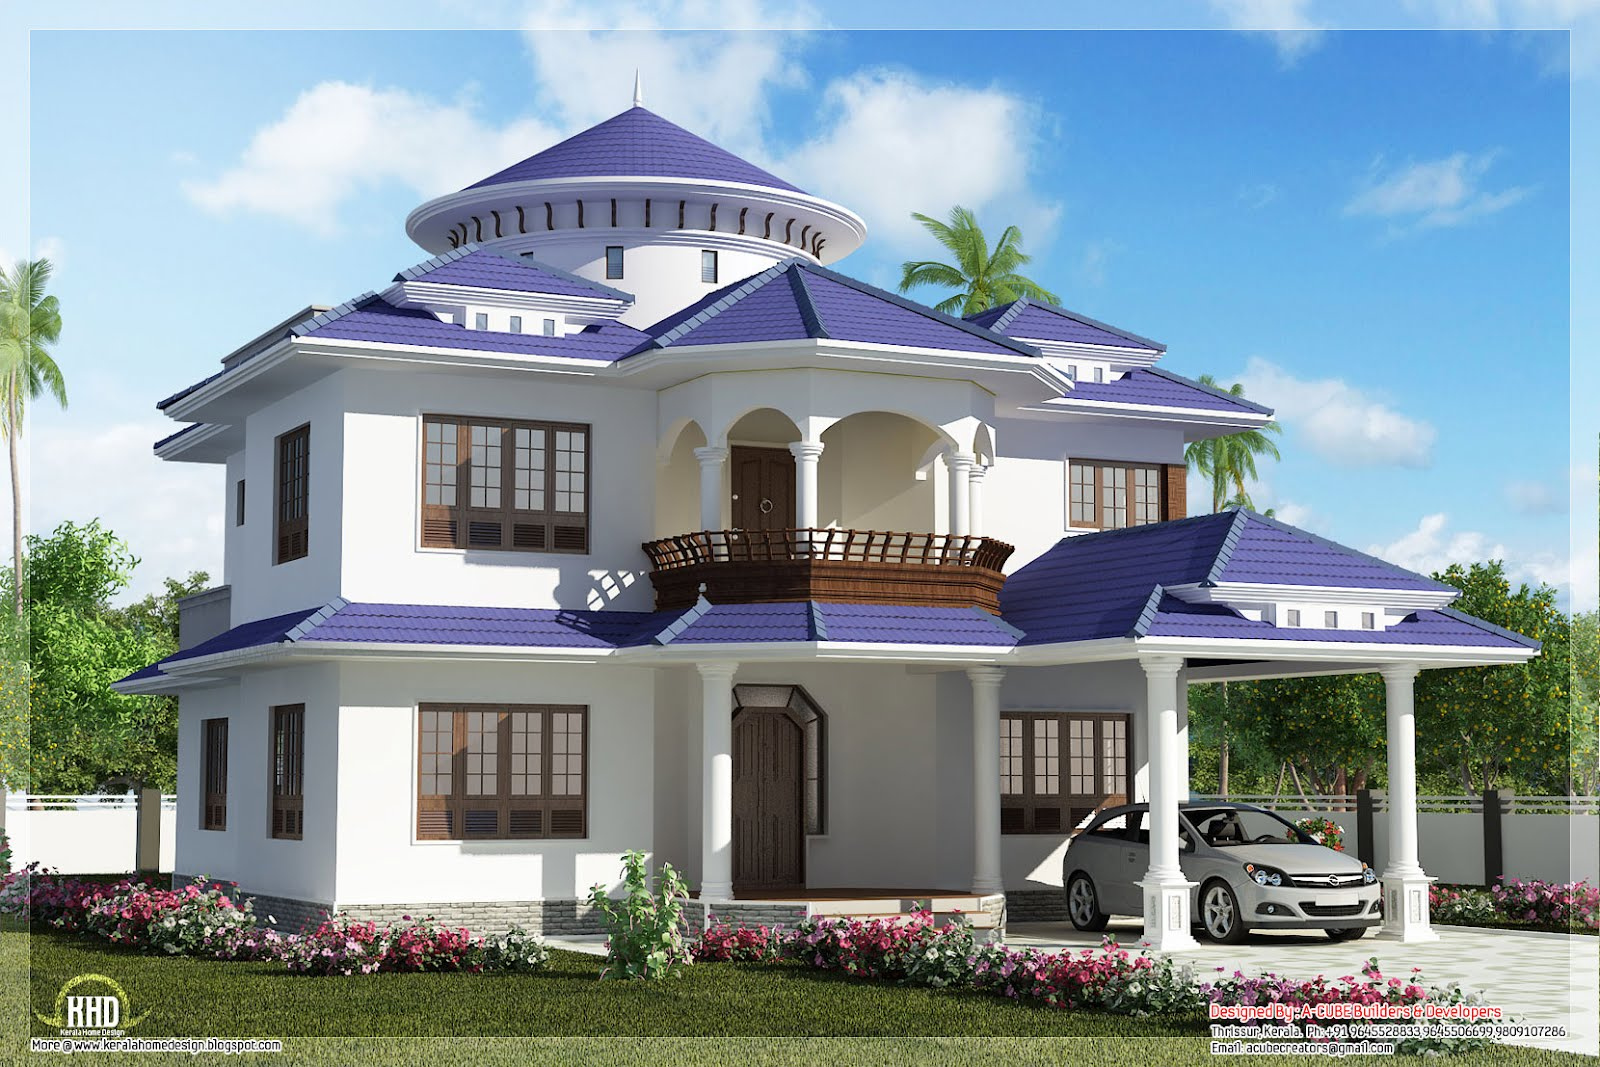 Perfect Dreamhouse Design 1600 x 1067 · 320 kB · jpeg